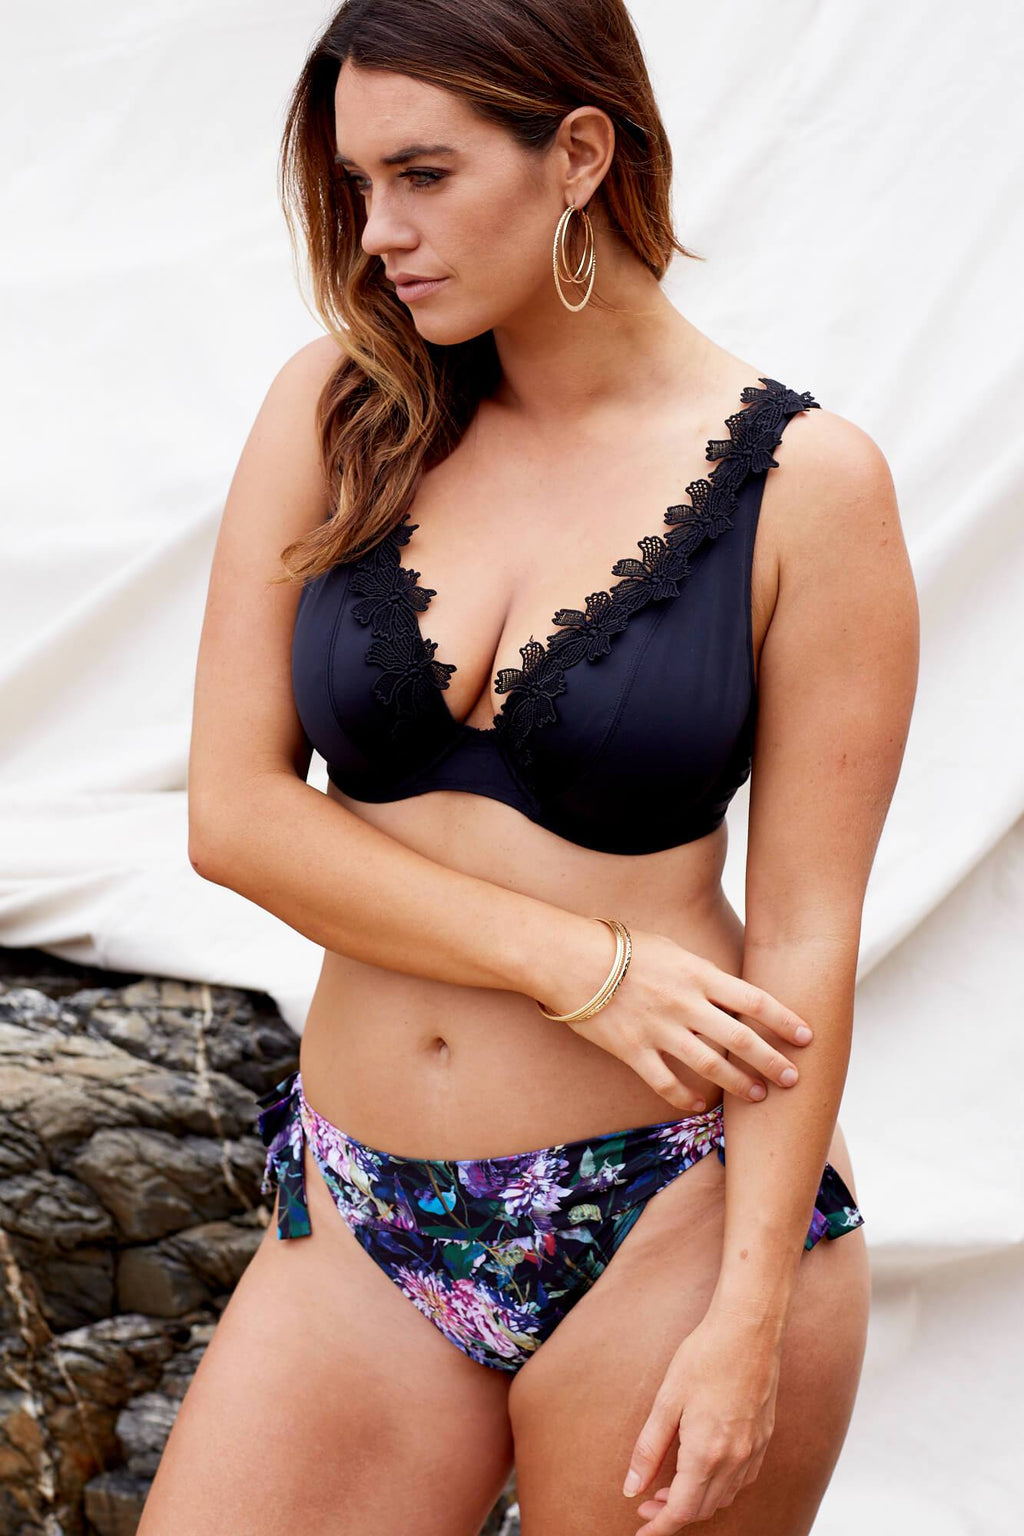 Marvell-Lane Marvell-Lane - Indah Bikini Top in Black - Nomads Cove